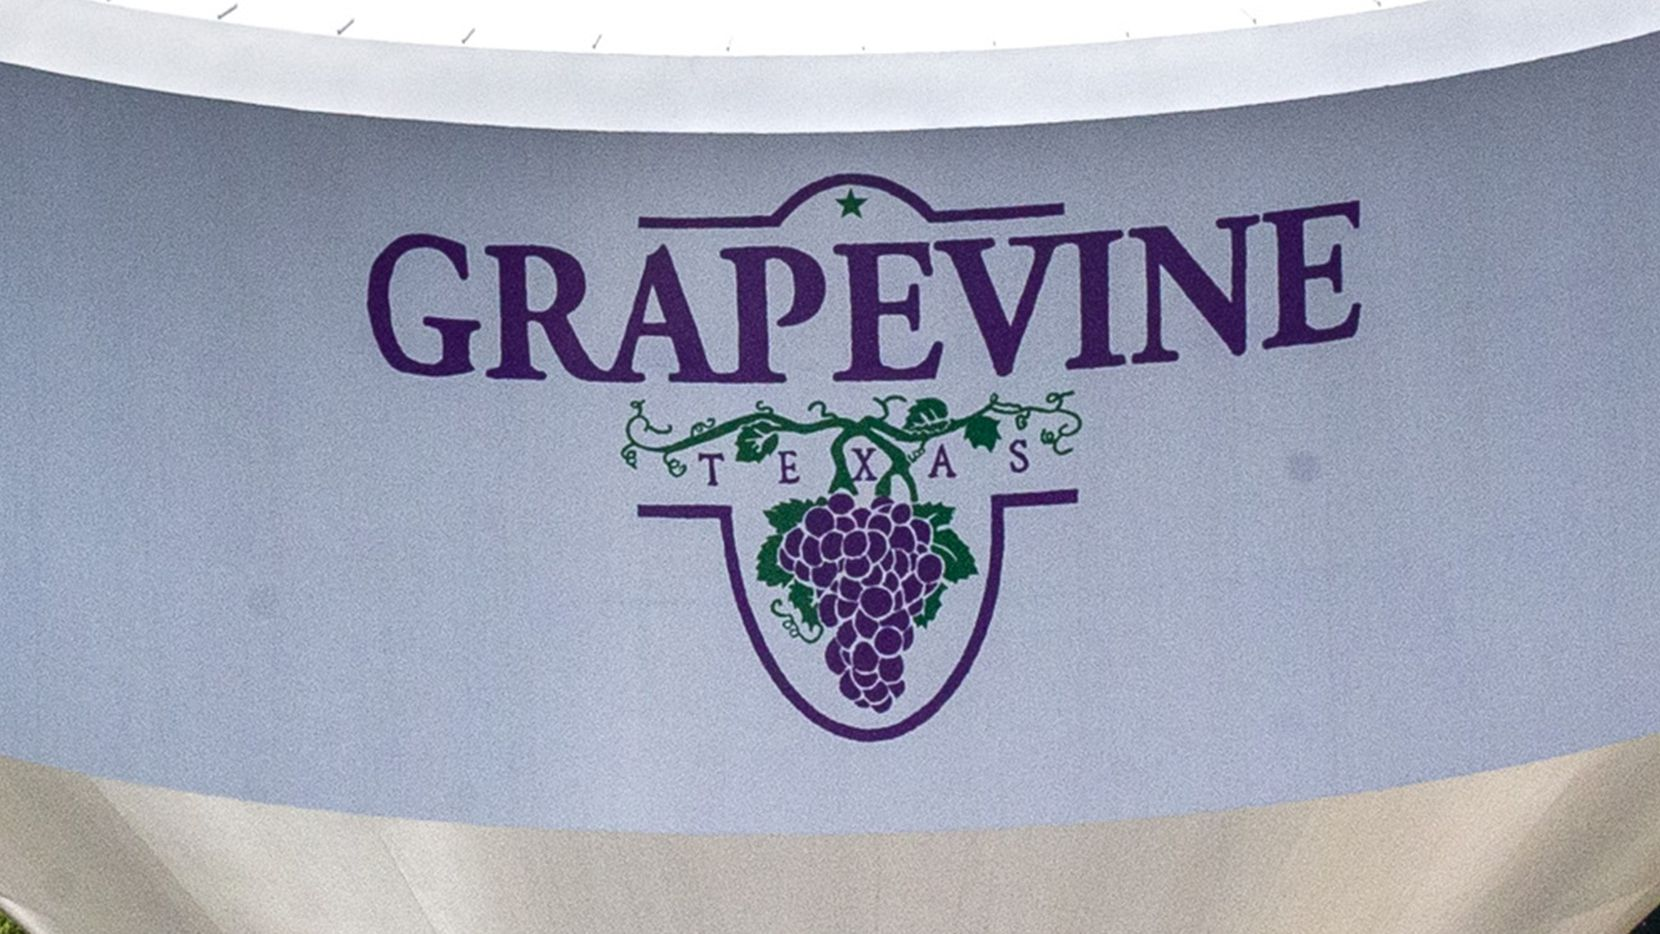 A Grapevine water tower in Grapevine, Texas, on Thursday, June 18, 2020.